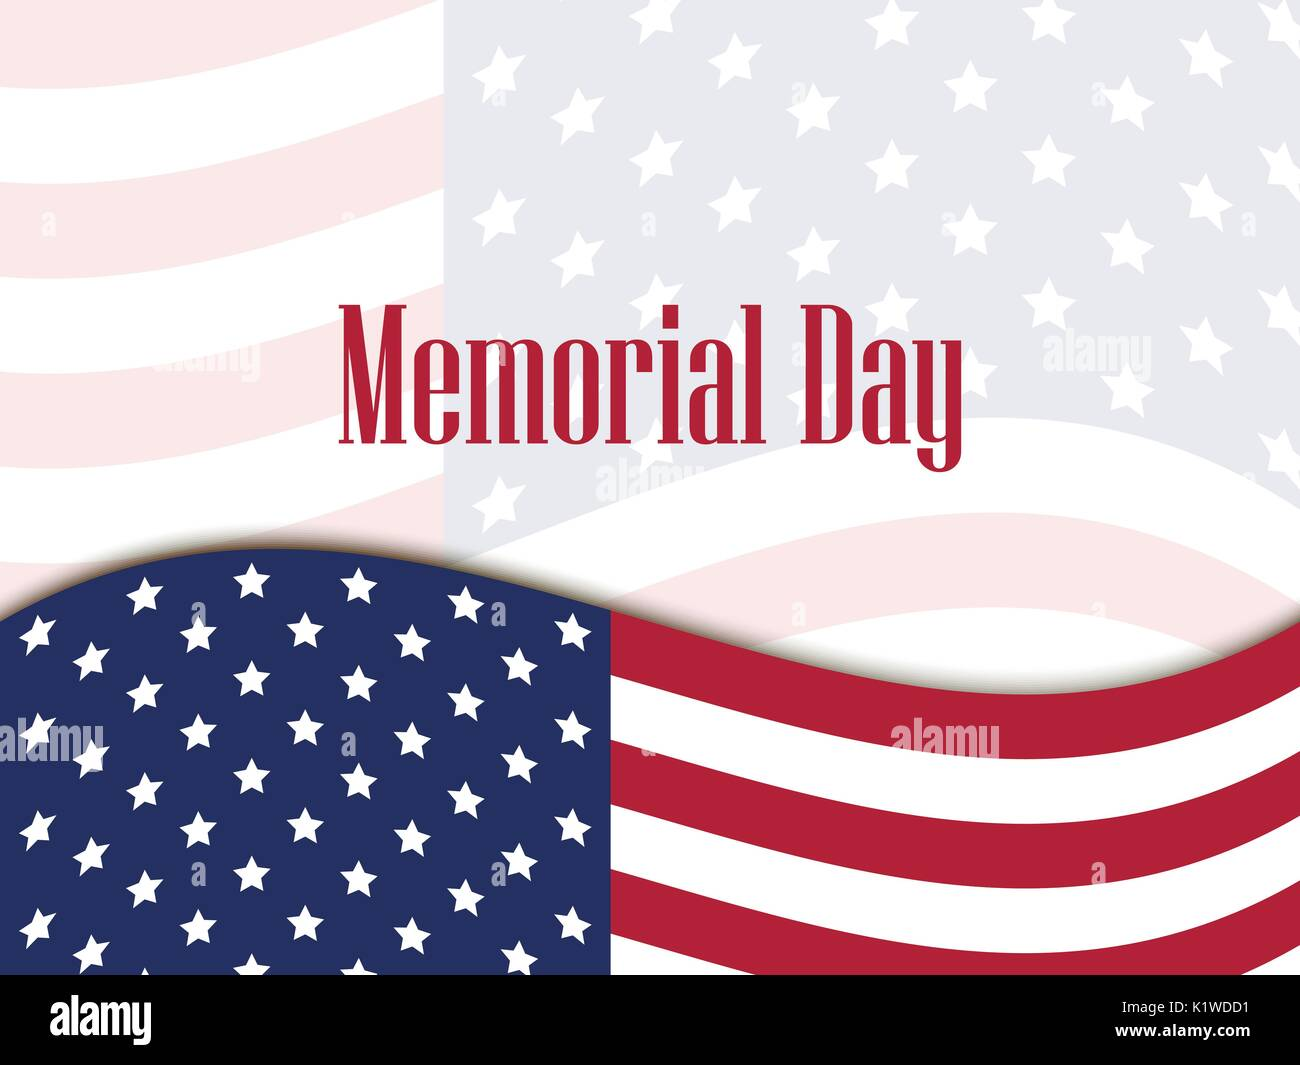 Memorial Day Closed Sign Template from c8.alamy.com